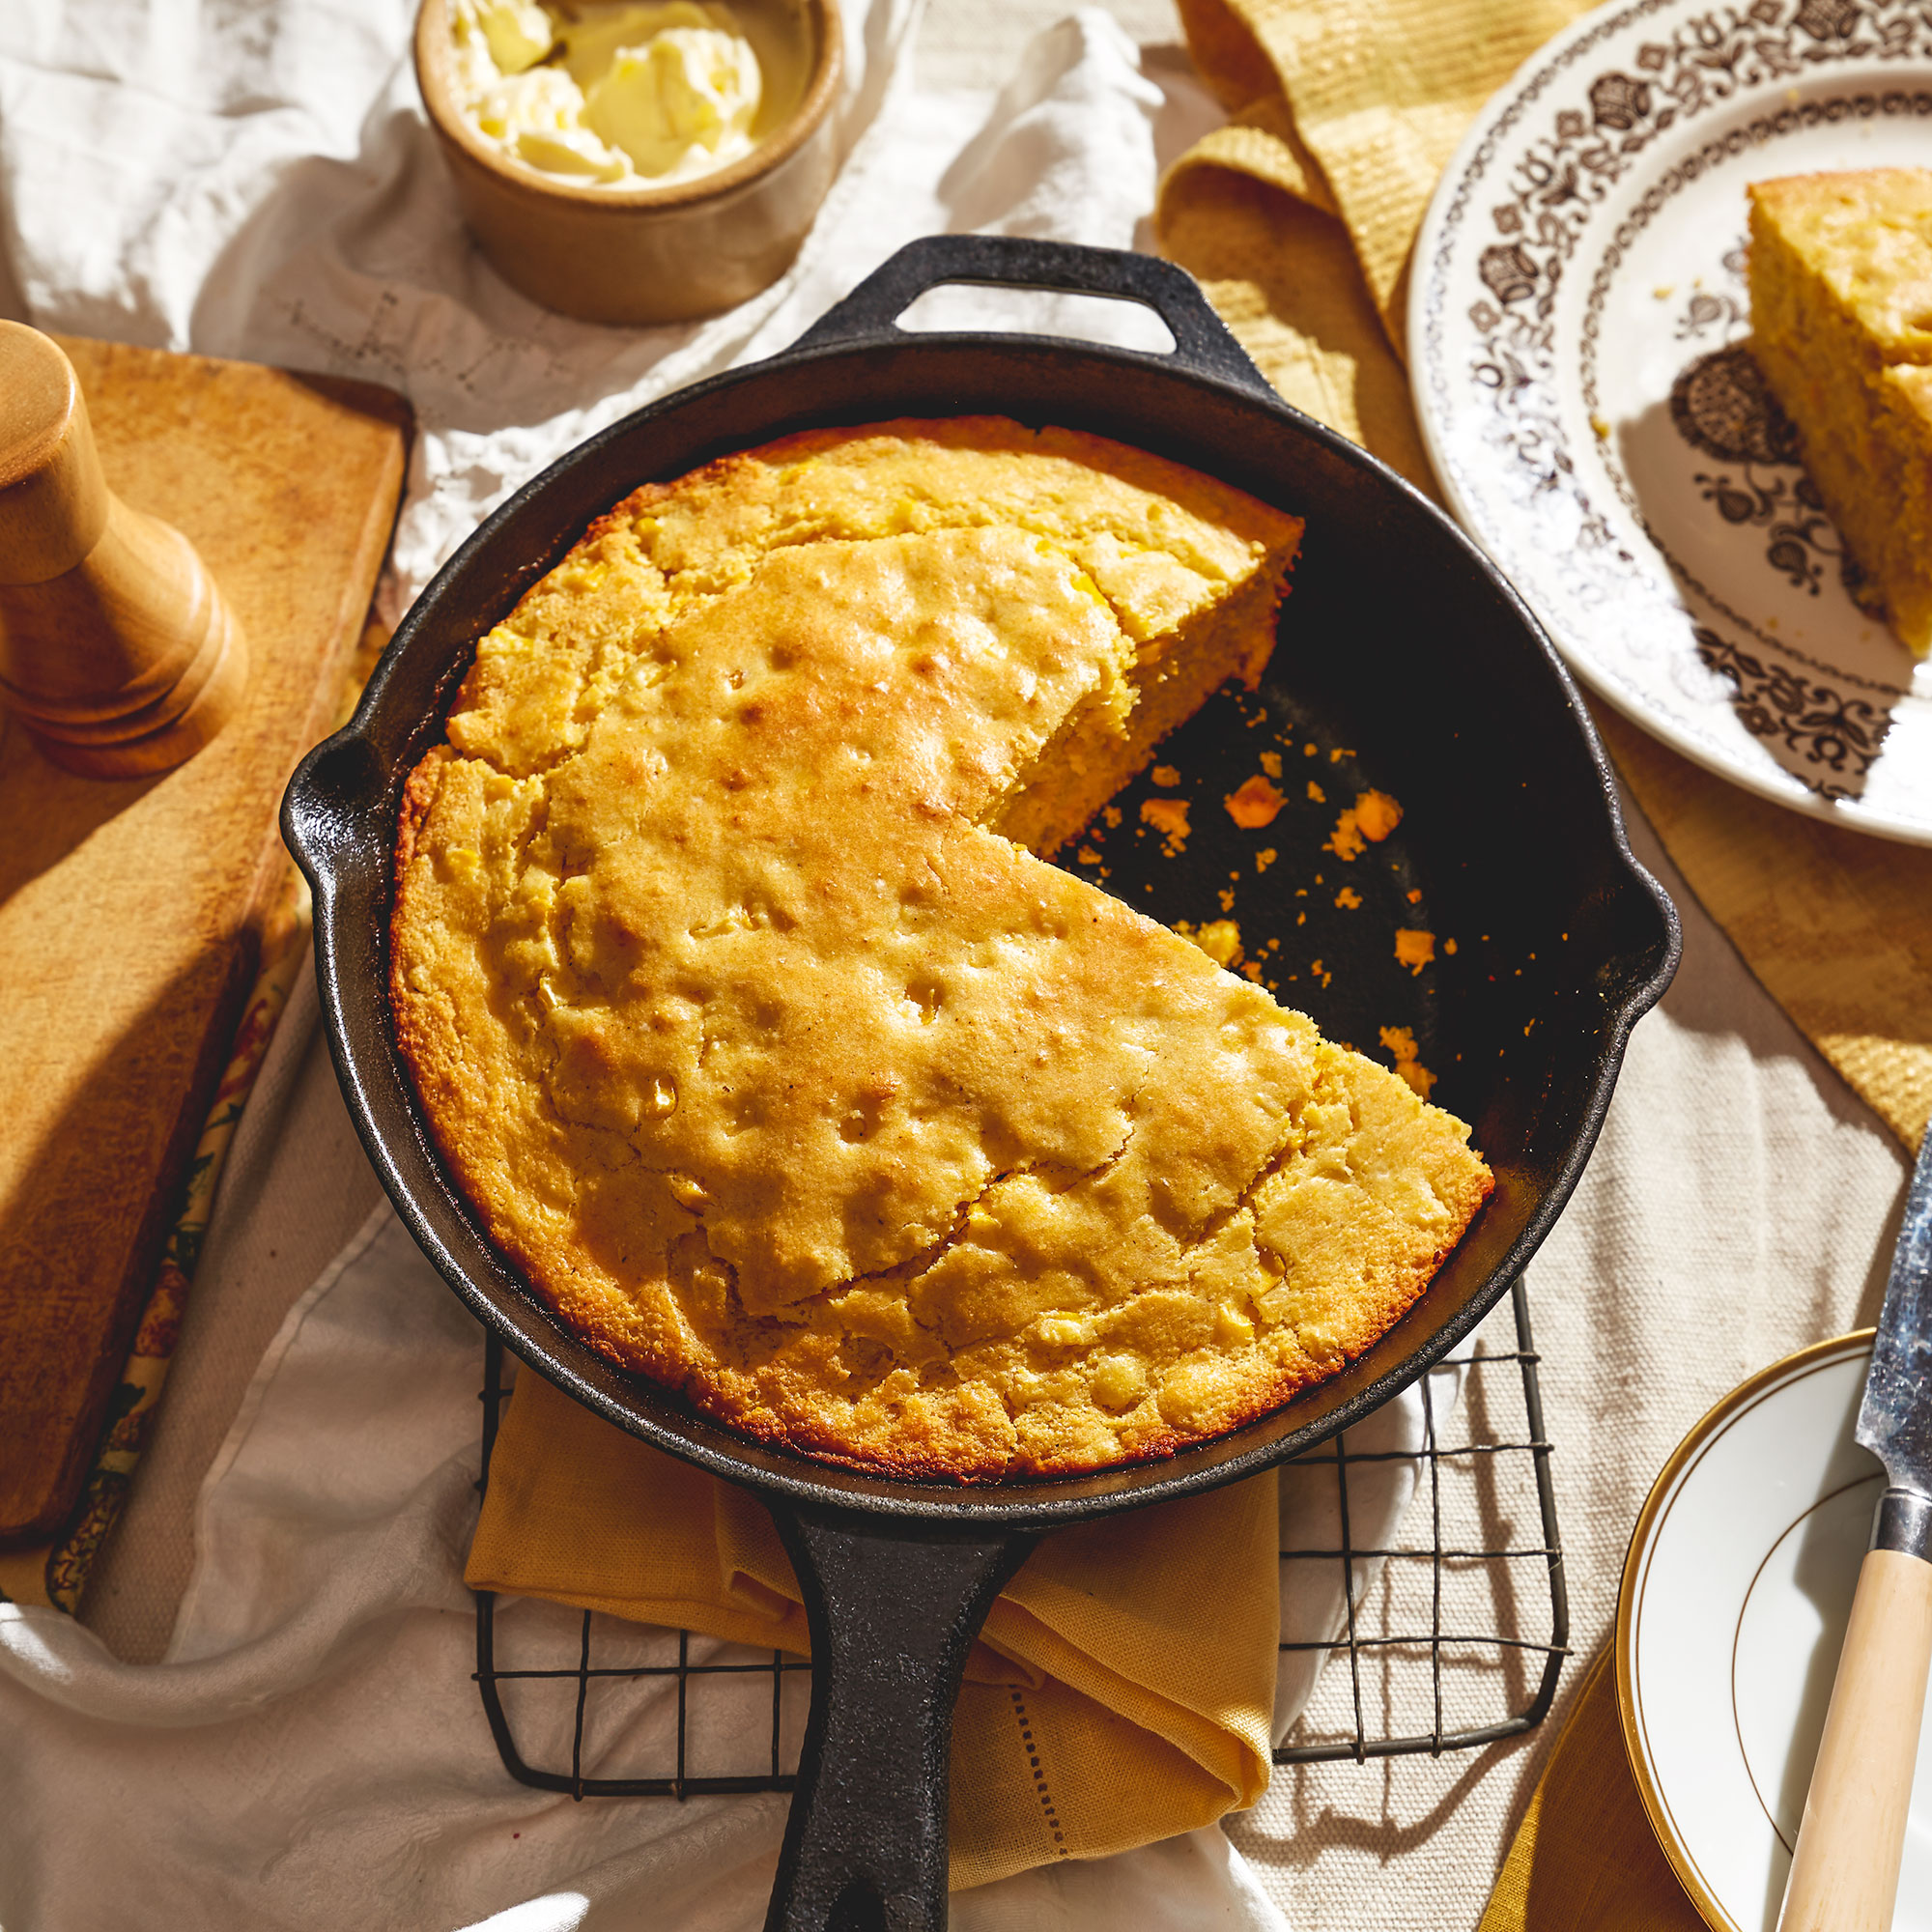 Cornbread in a cast-iron skillet